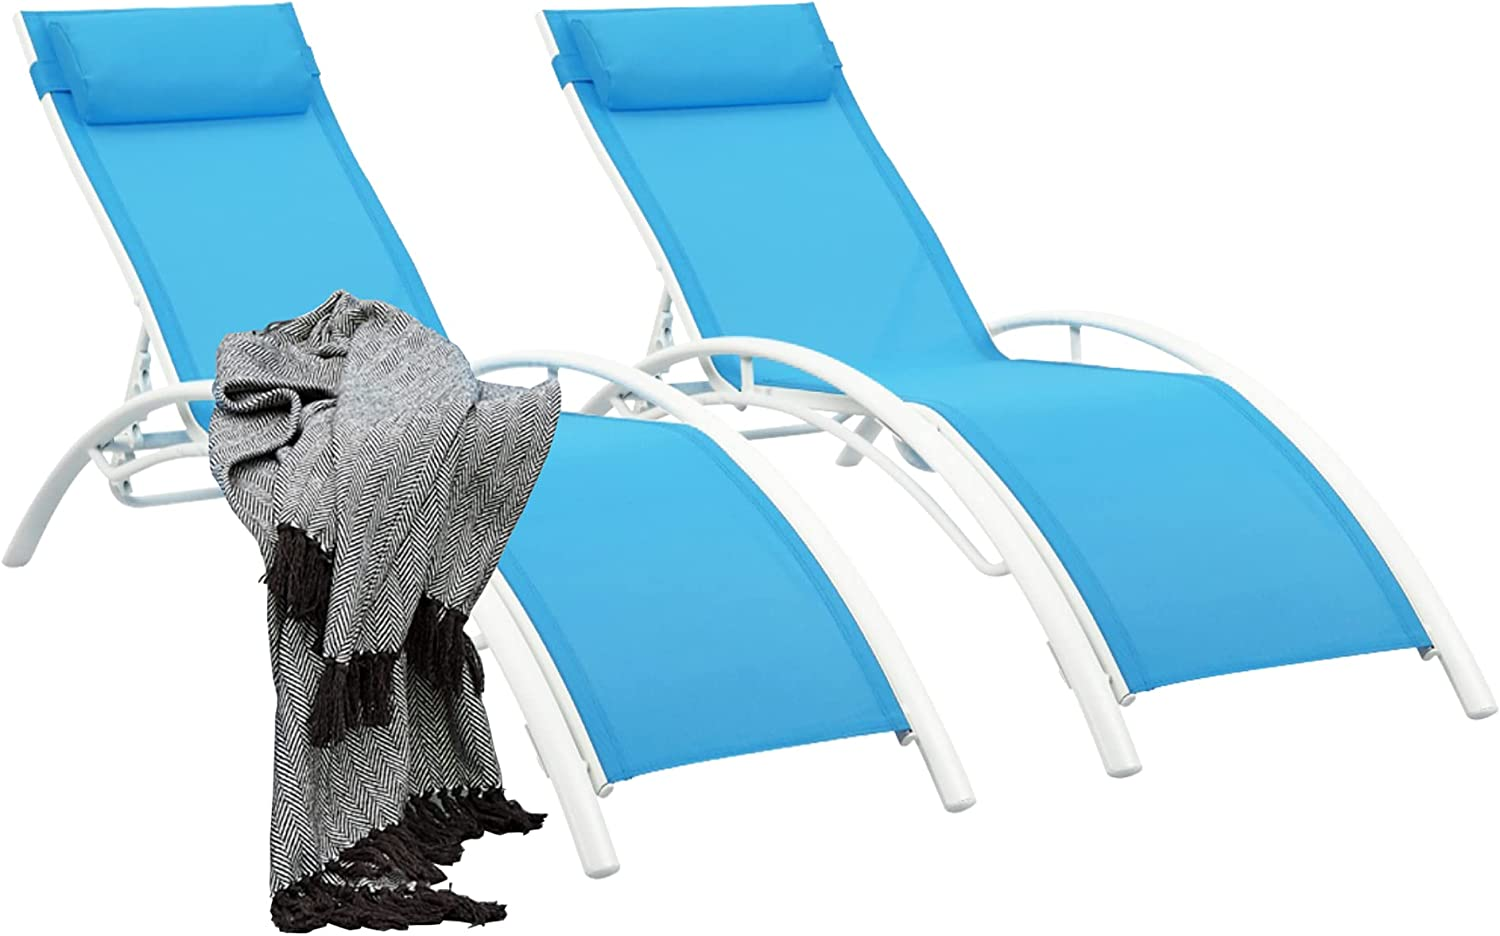 Outdoor Lounge Chairs Patio Chairs Set of 2 Outdoor ChairAdjustable Chaise Lounge 5-Level Pool Chairs with Headrest for Beach, Pool (Blue)